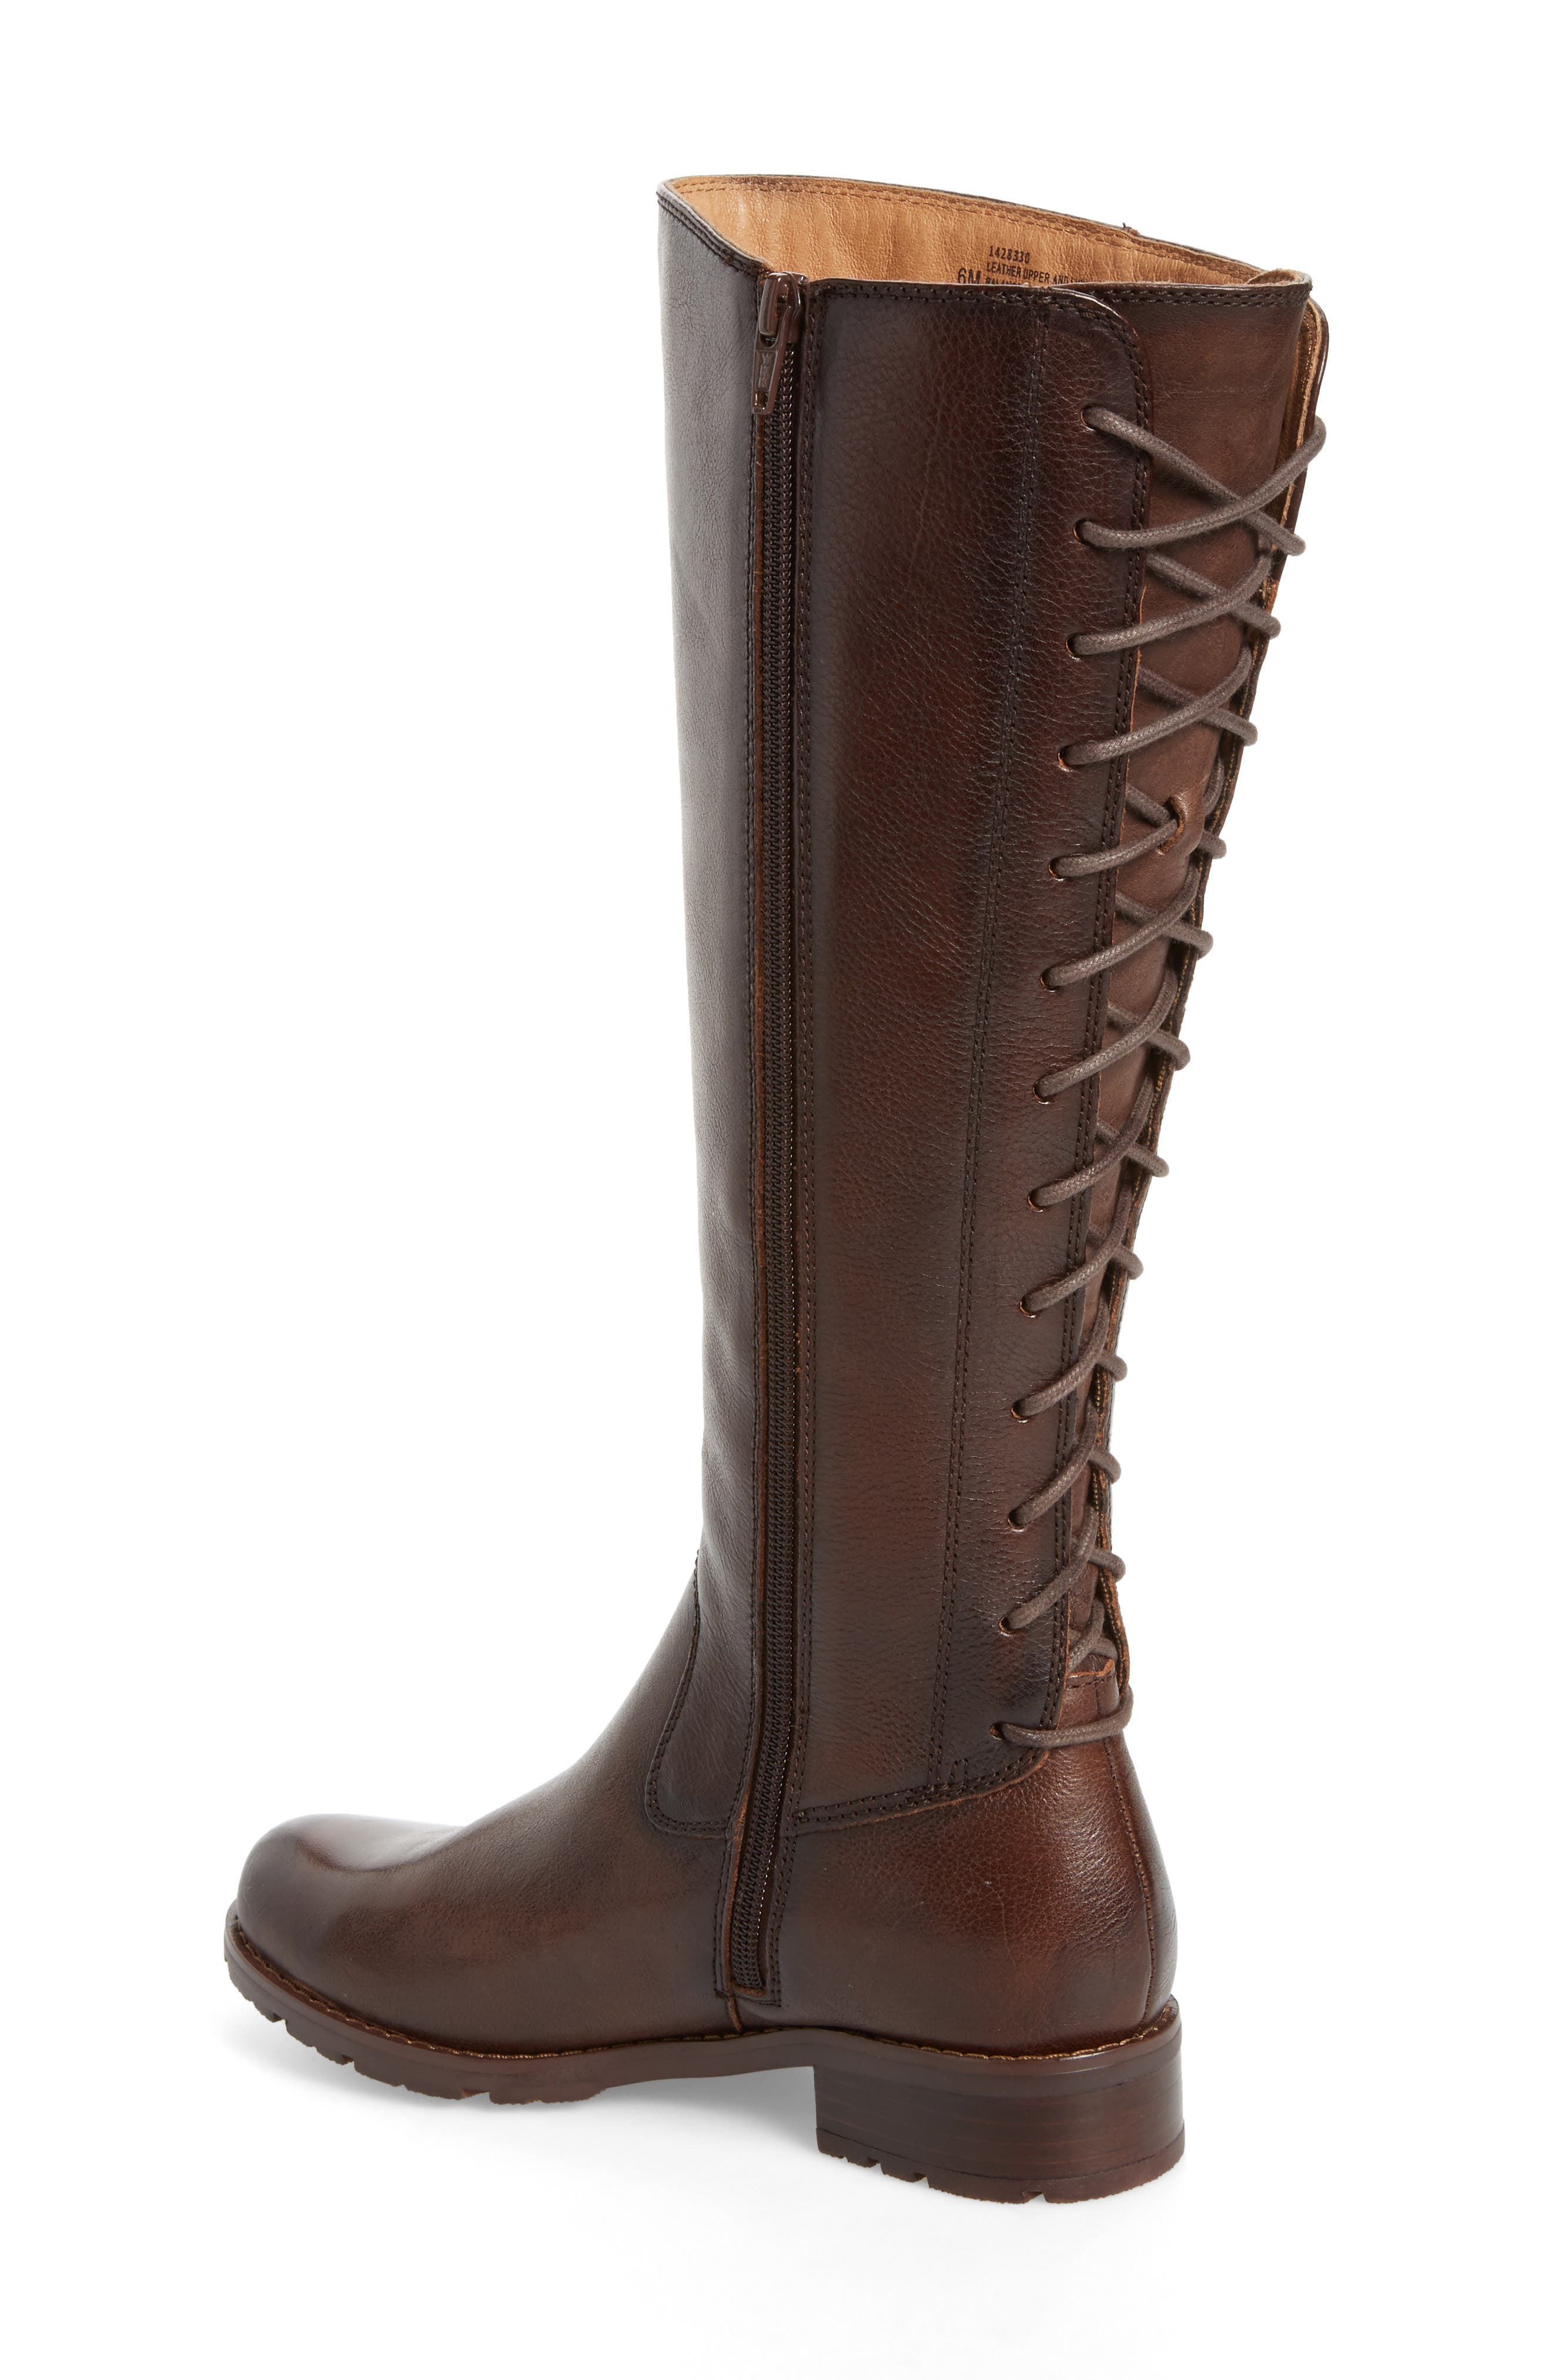 'Sharnell' Riding Boot,                             Alternate thumbnail 2, color,                             Aztec Brown Leather